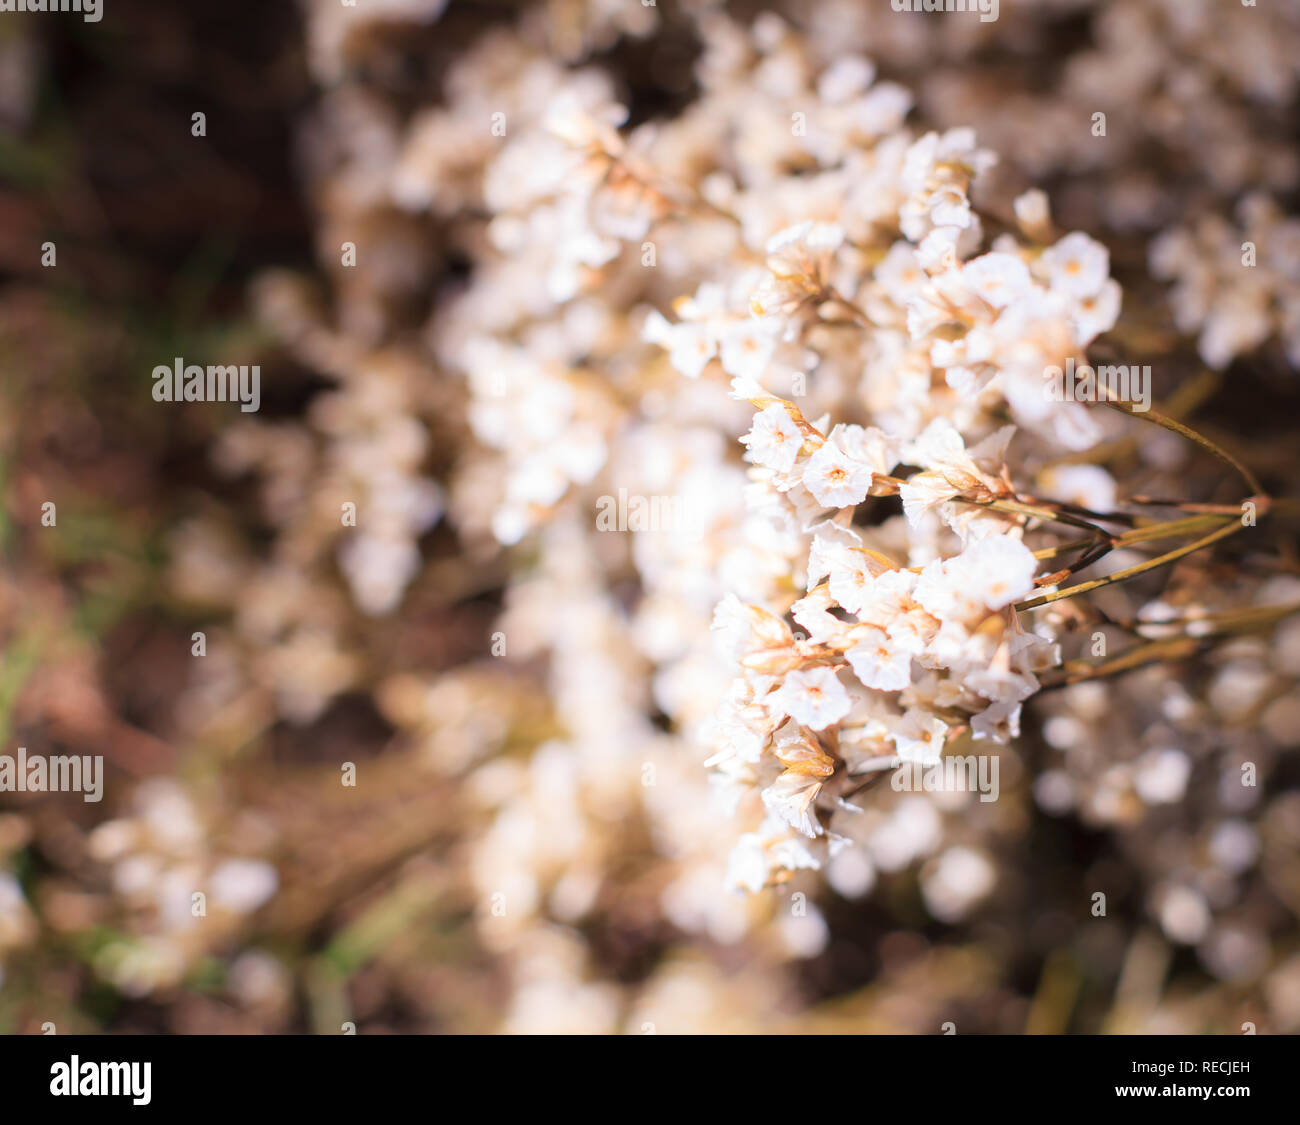 White Innocent Airy Limonium (sea lavender, statice, caspia, marsh rosemary) Flowers, Natural Wildflower Background. Florist, Floral bouquet, vase arr - Stock Image